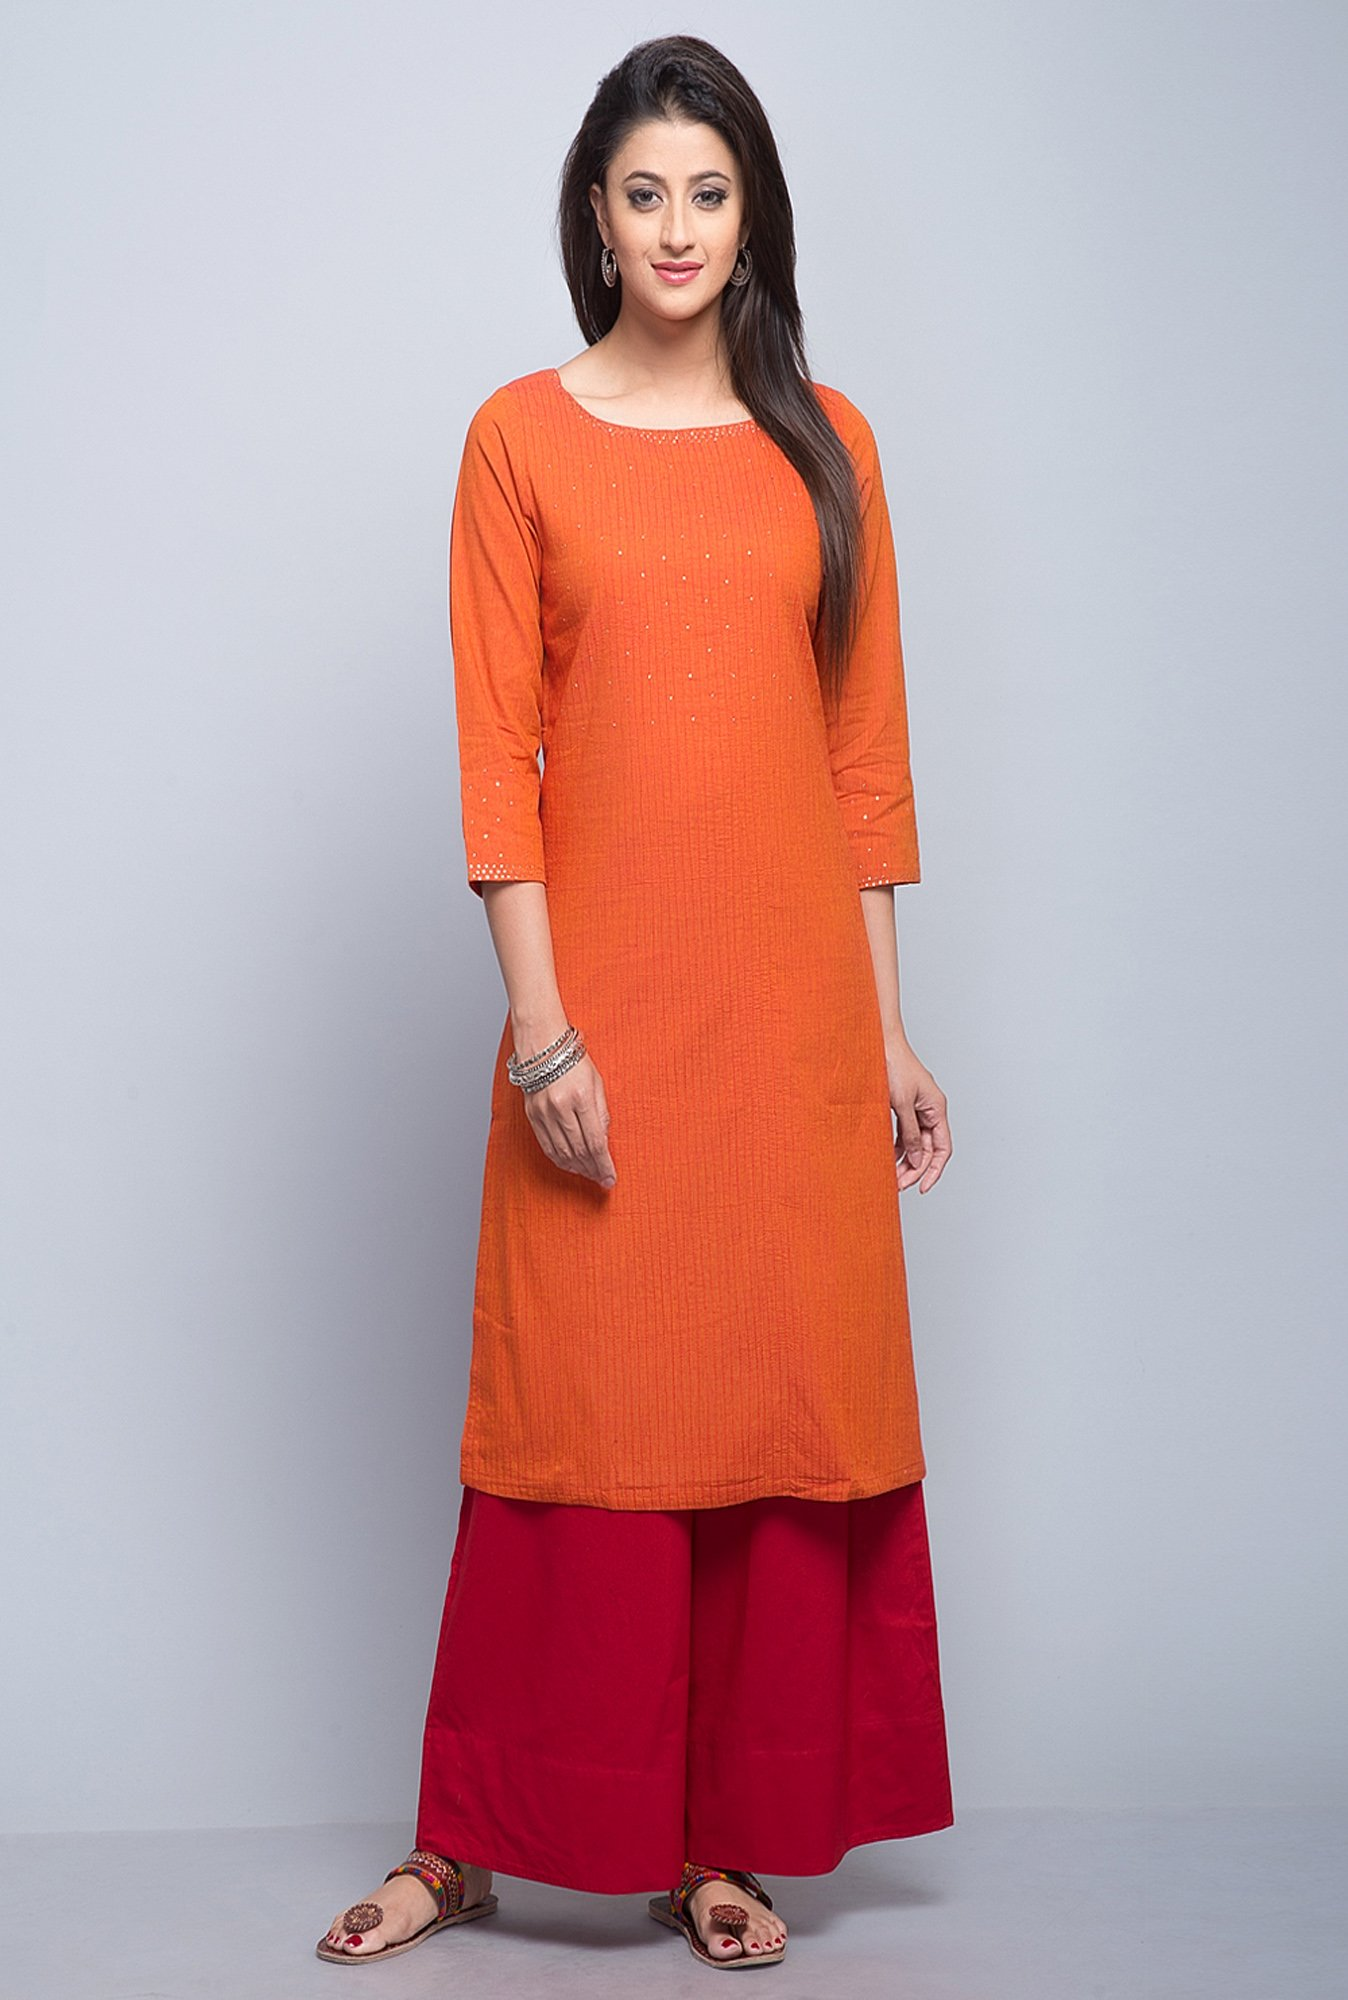 Fabindia Orange Embroidered Kurta